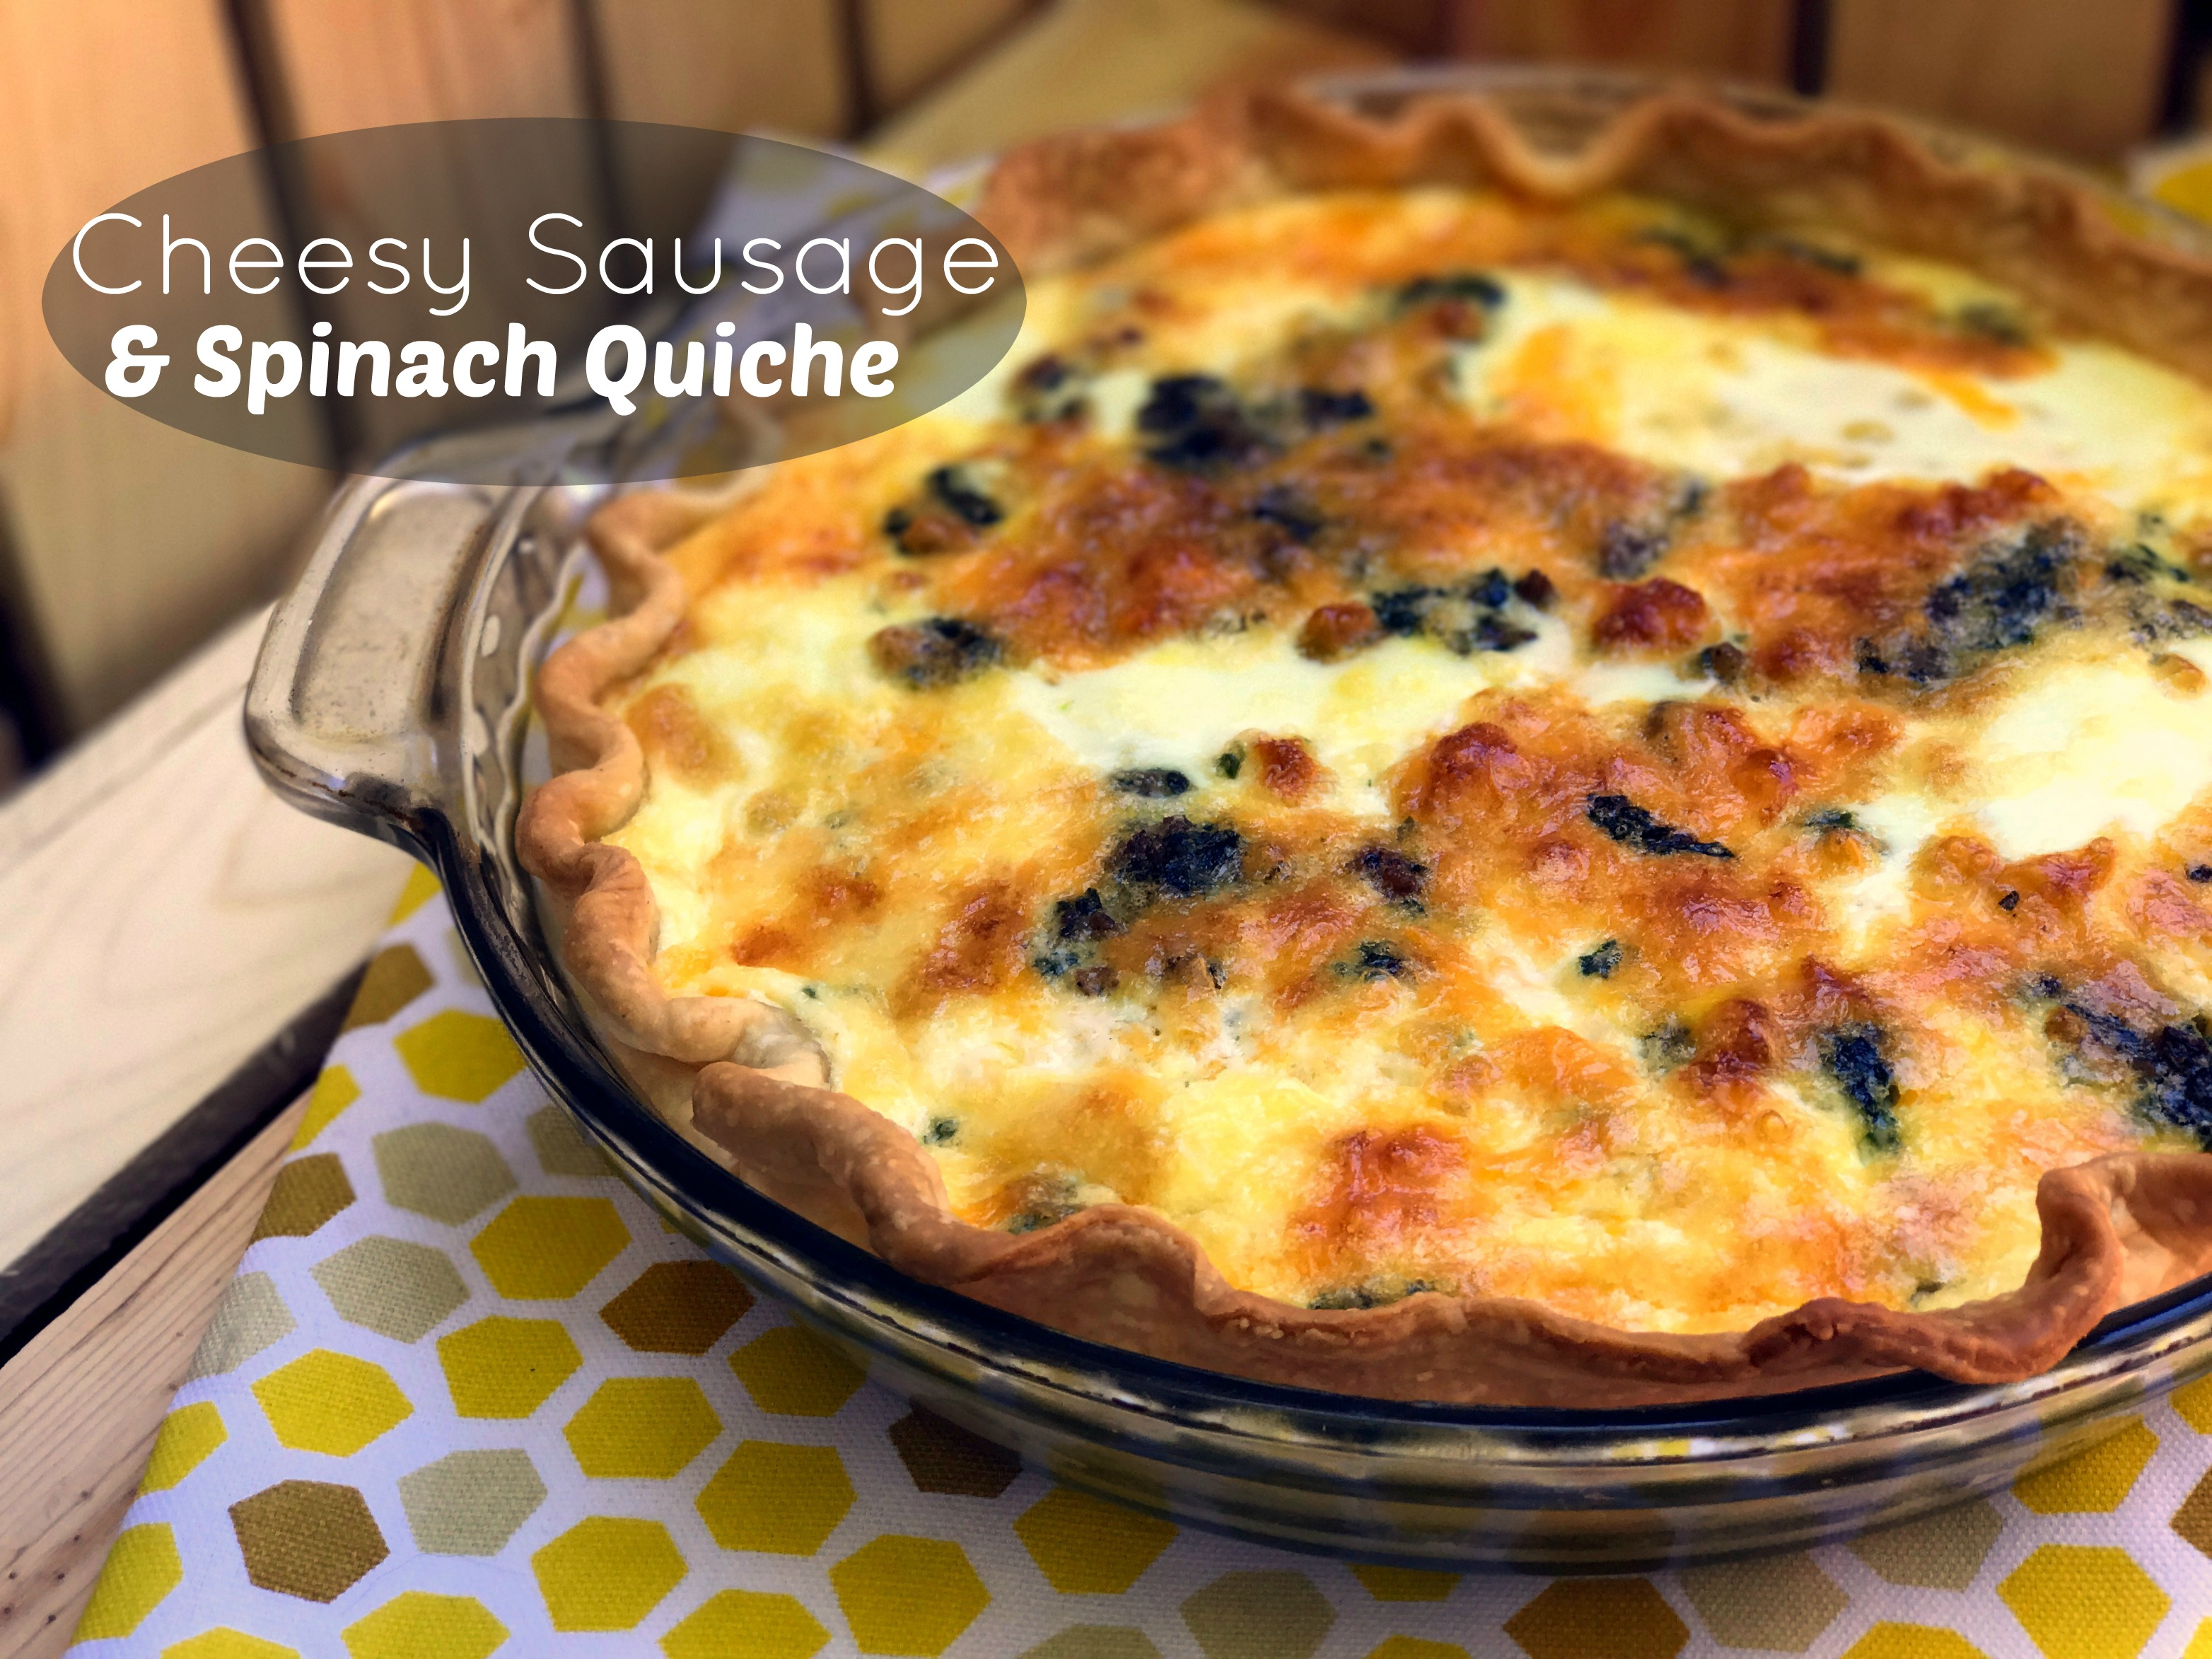 Cheesy Sausage & Spinach Quiche